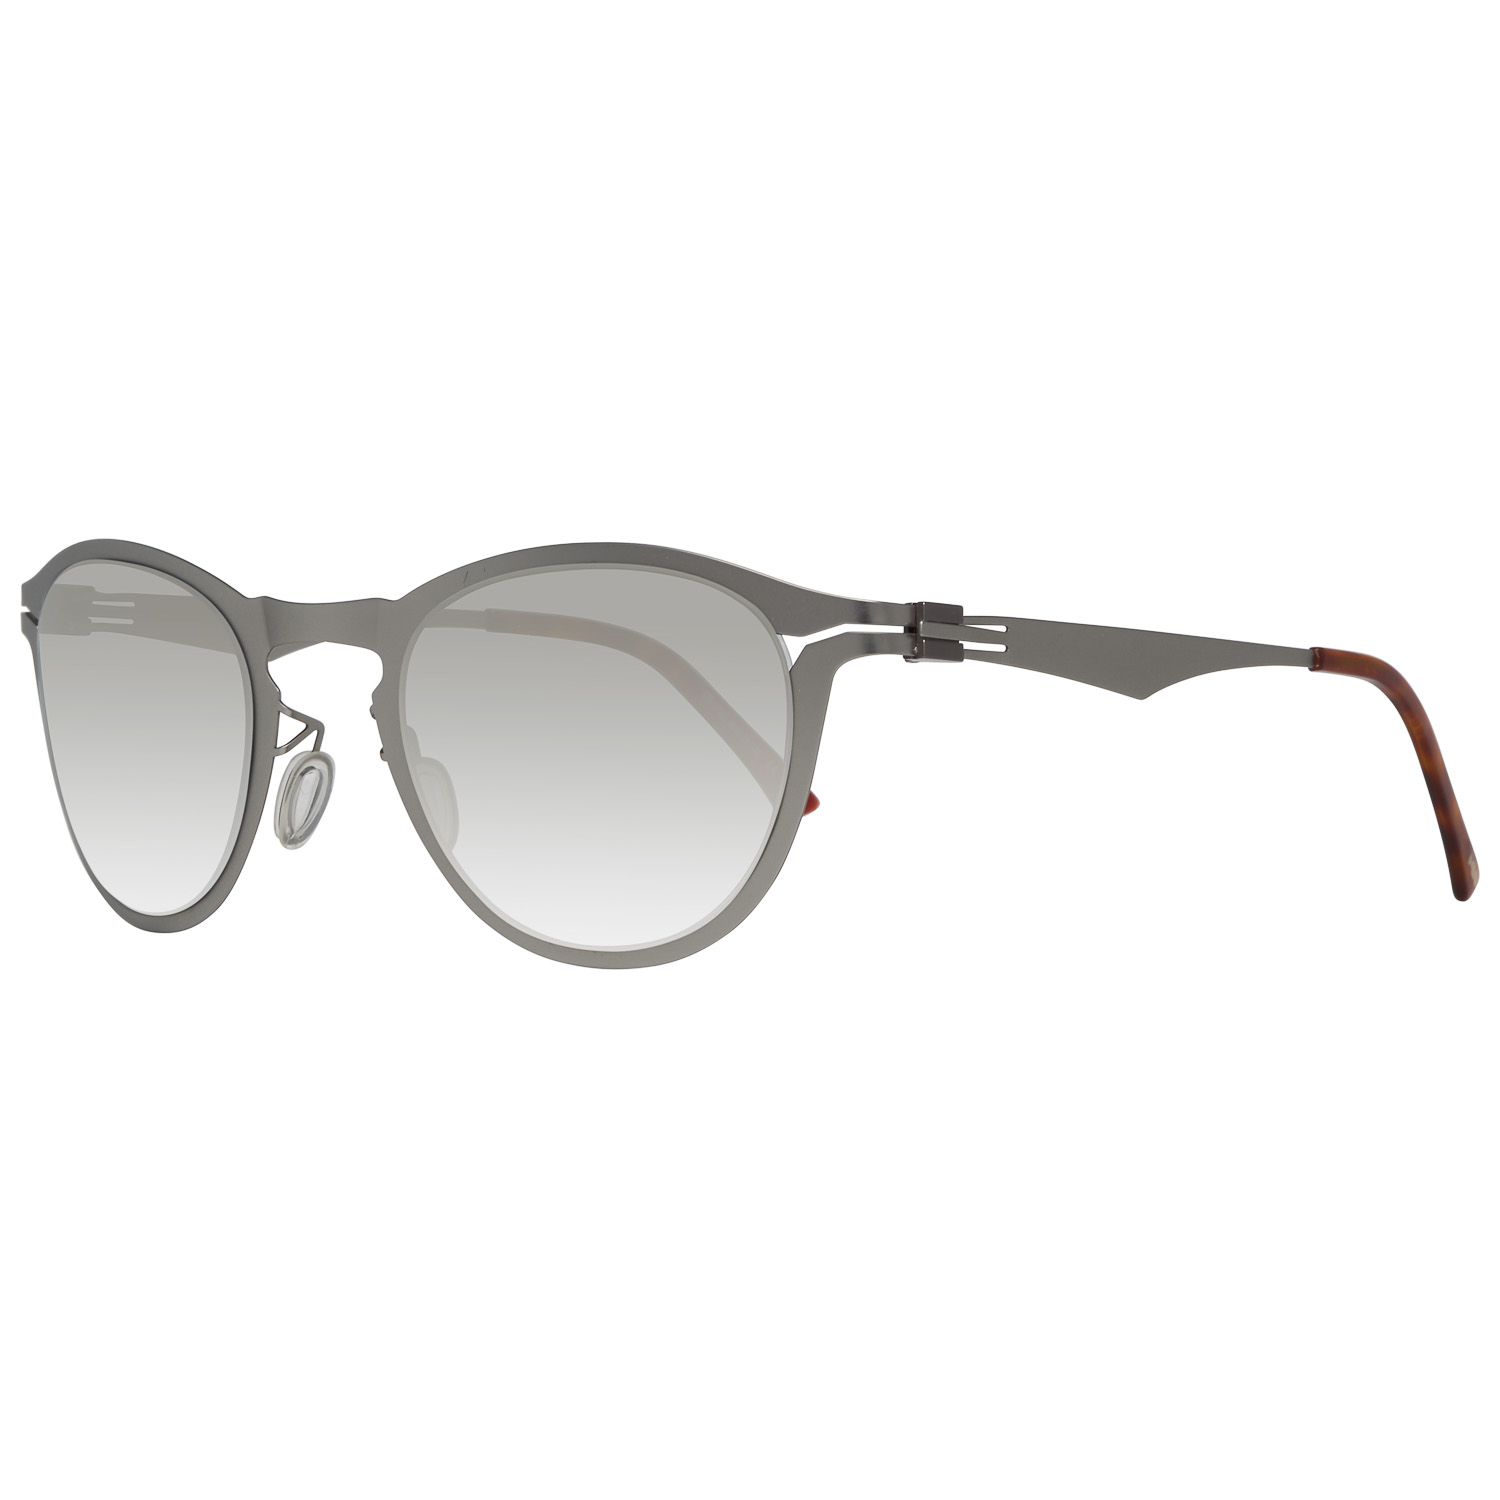 Greater Than Infinity Sunglasses GT017 S02 46 Silver